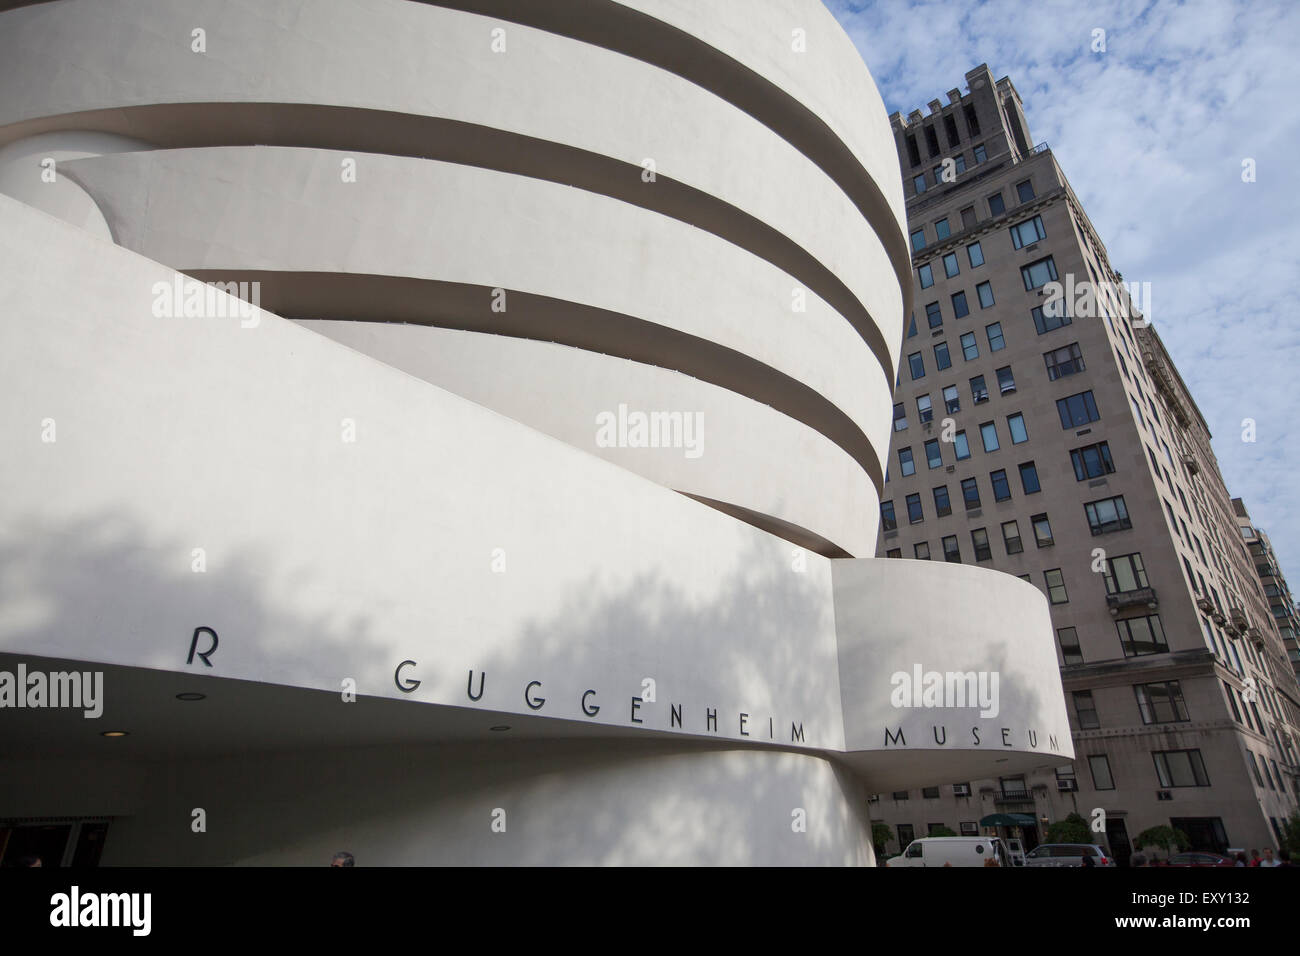 NEW YORK - May 27, 2015: The Solomon R. Guggenheim Museum, often referred to as The Guggenheim, is an art museum - Stock Image